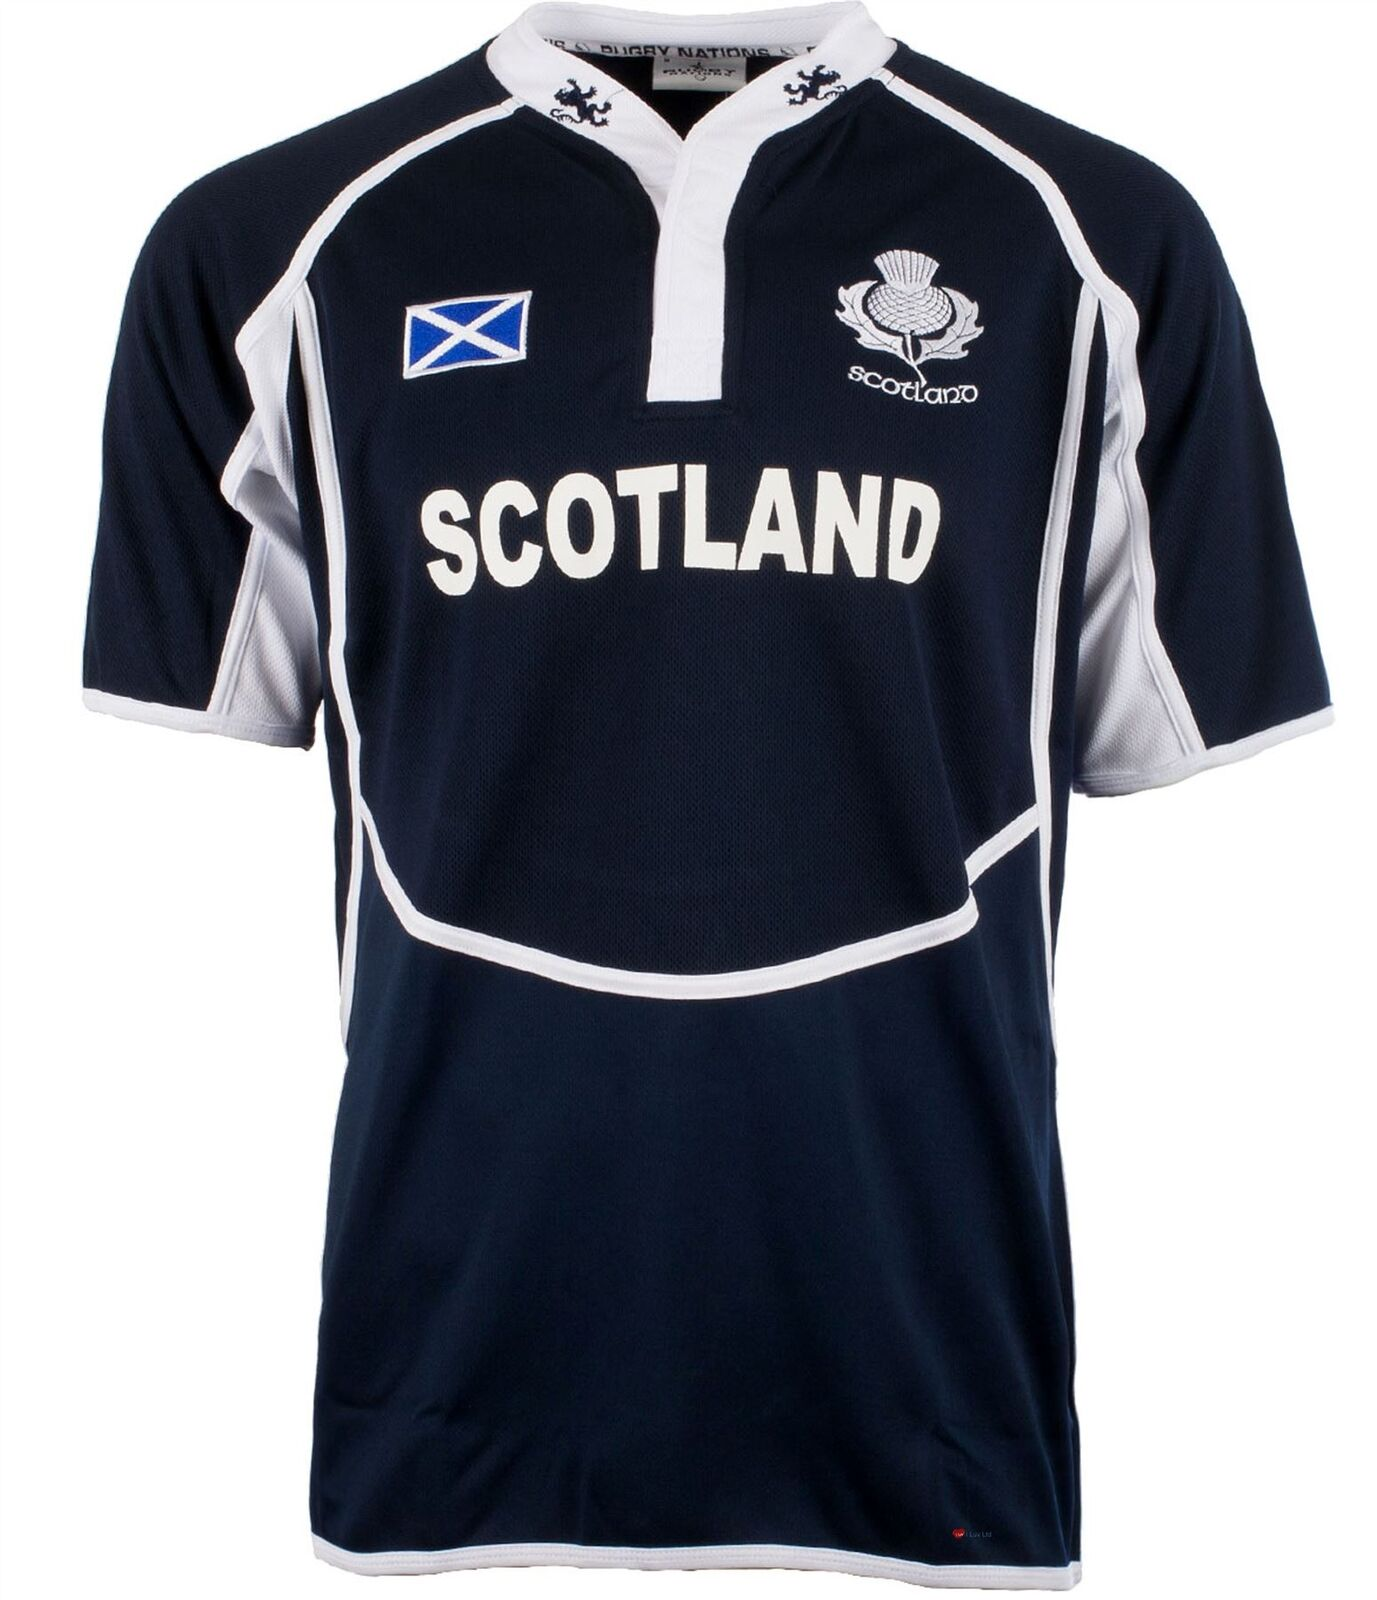 Gents Cooldry Style Rugby Shirt In Scotland Colours Size X-Small